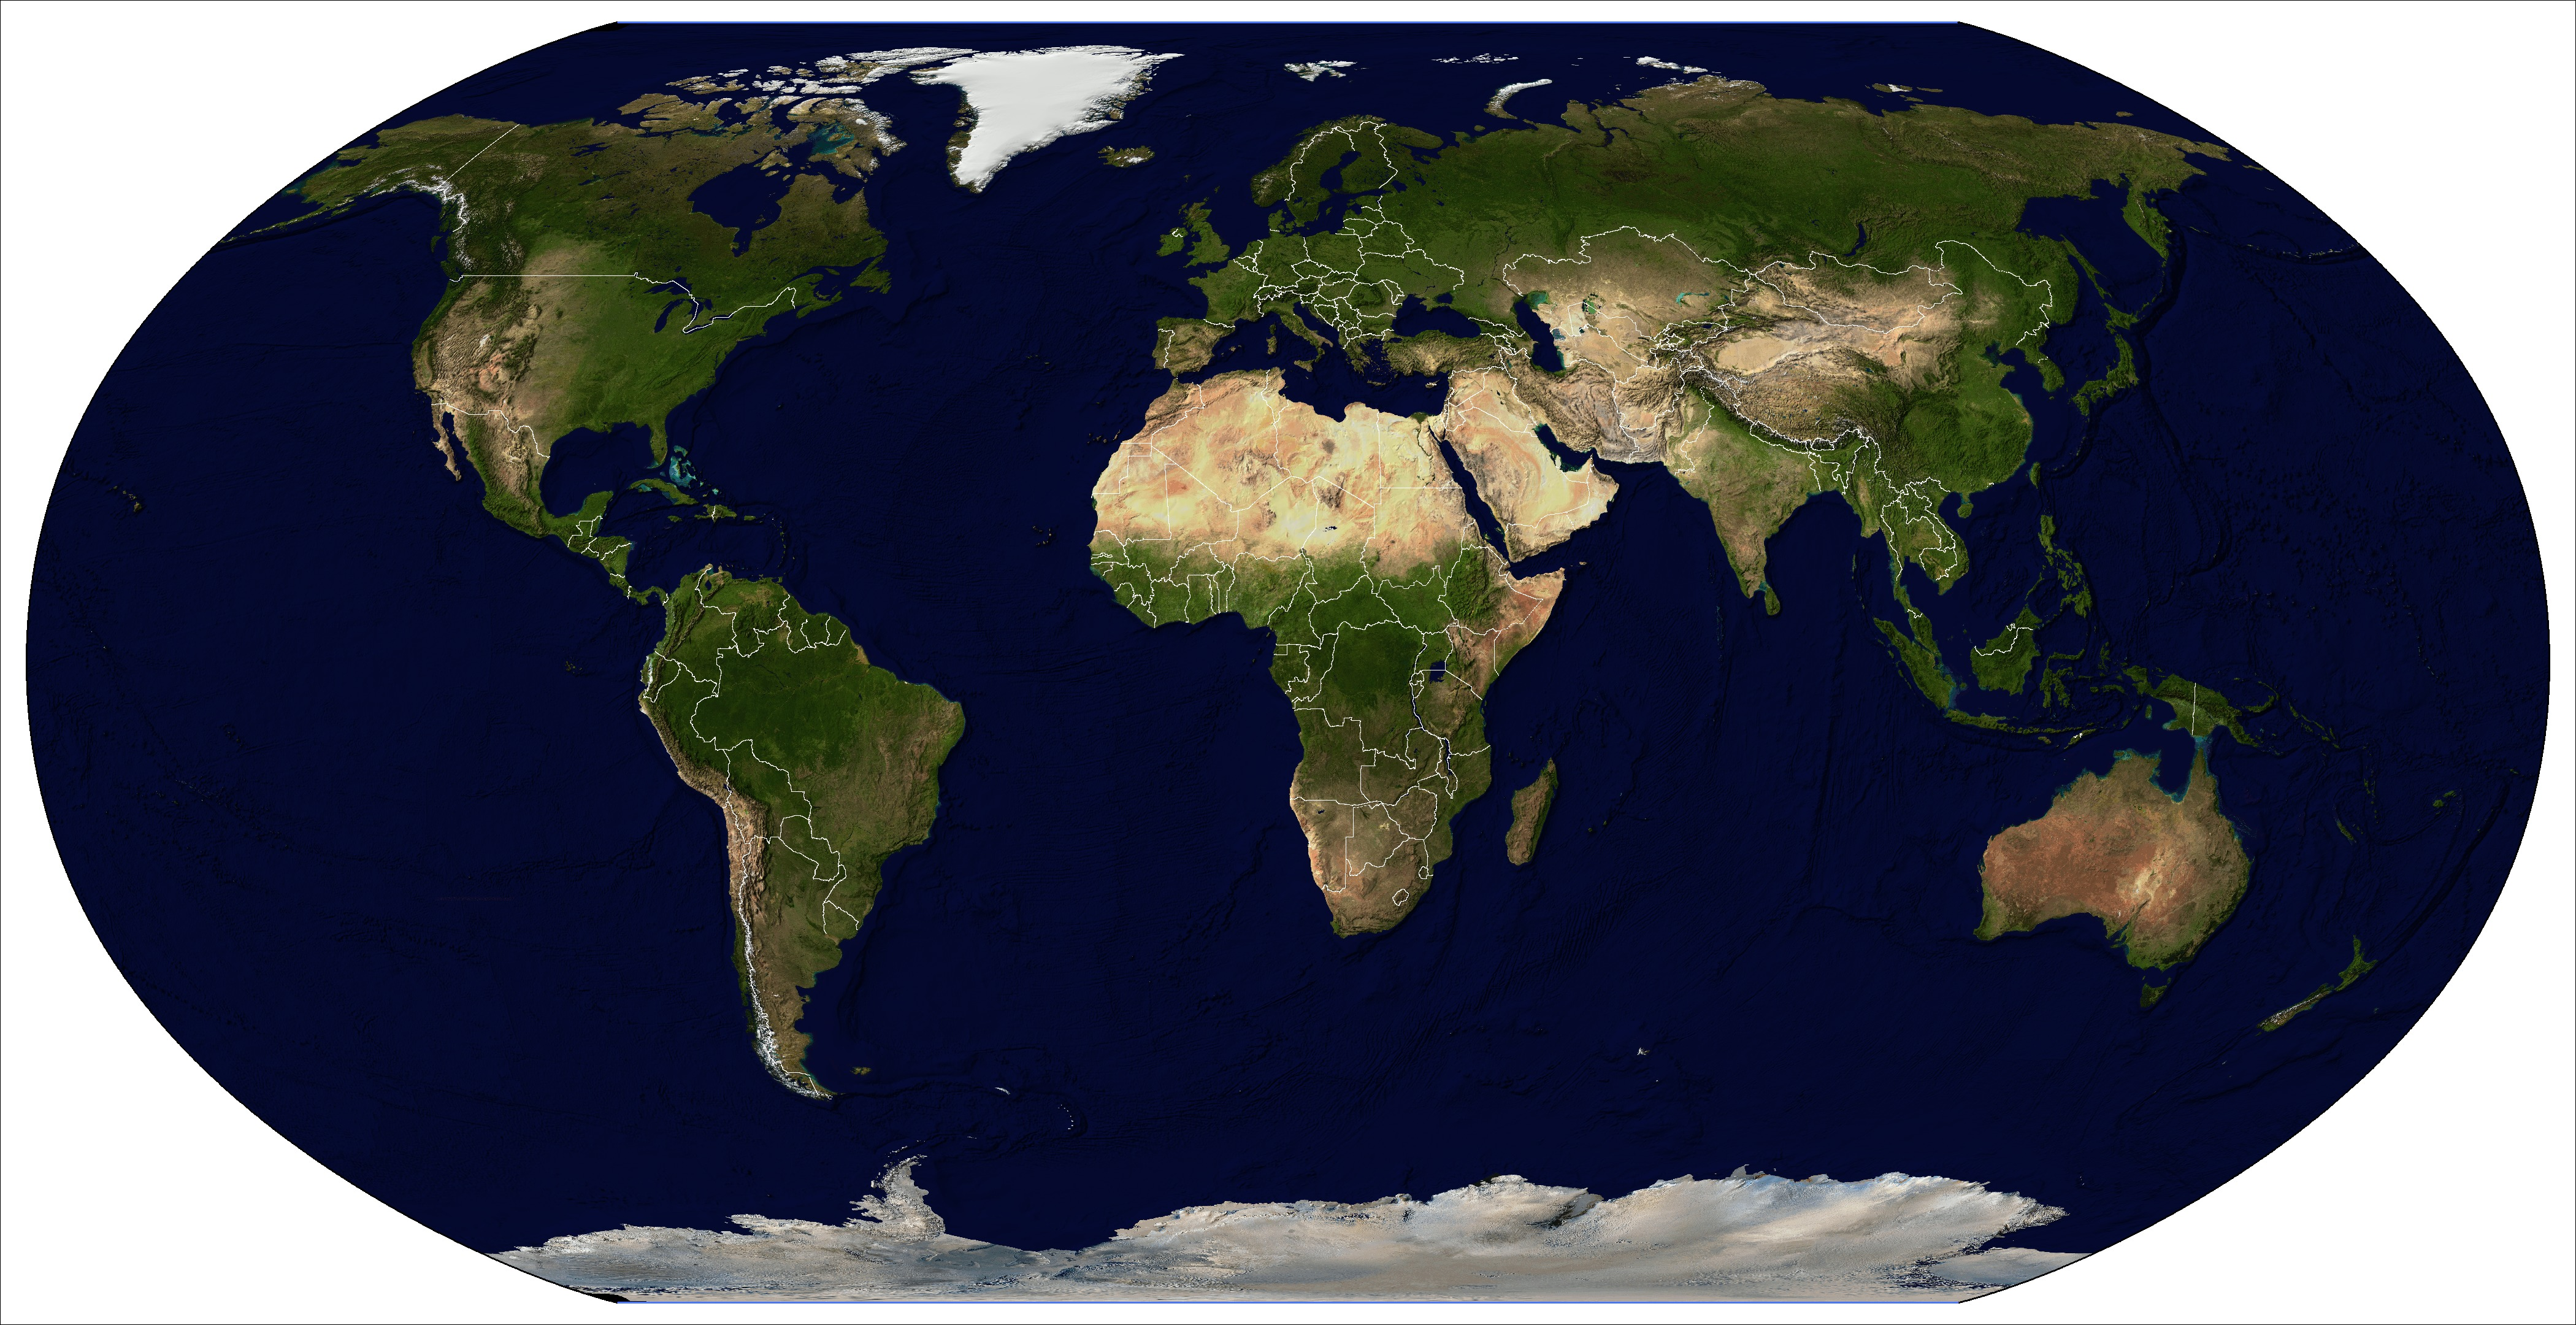 World maps public domain pat the free open source portable atlas td world map blue marble hill shaded with etopo2v2 includues political boundaries on land gumiabroncs Images